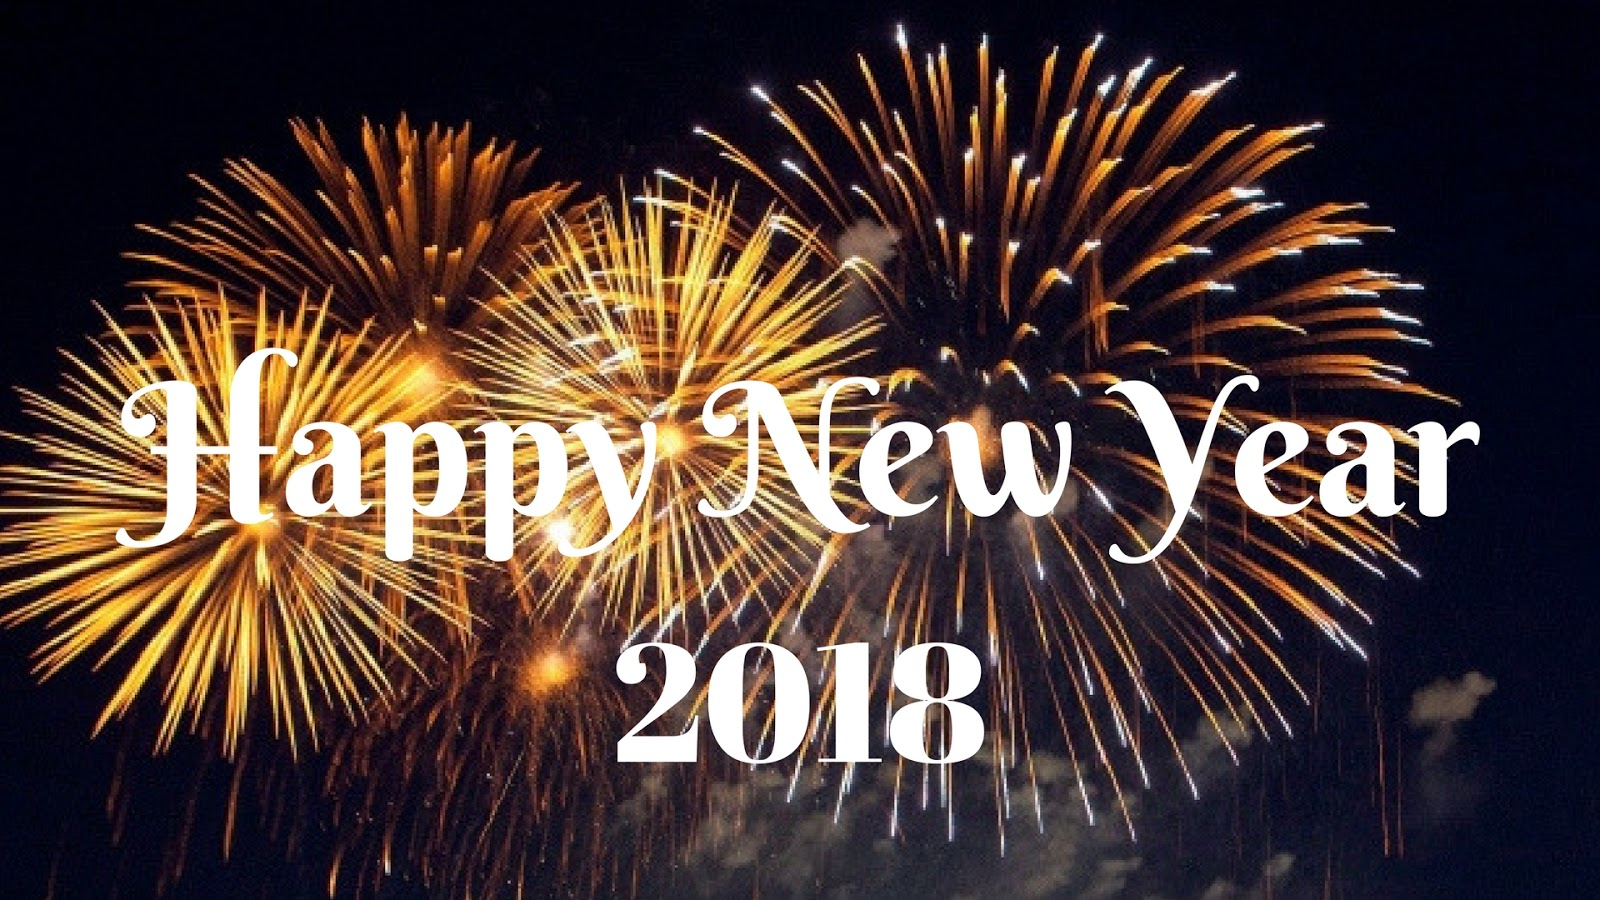 Superior Happy New Year 2018 HD Wallpaper 5 The Awesome Happy New Year 2018 HD  Wallpaper With Firework Background, Free To Download.